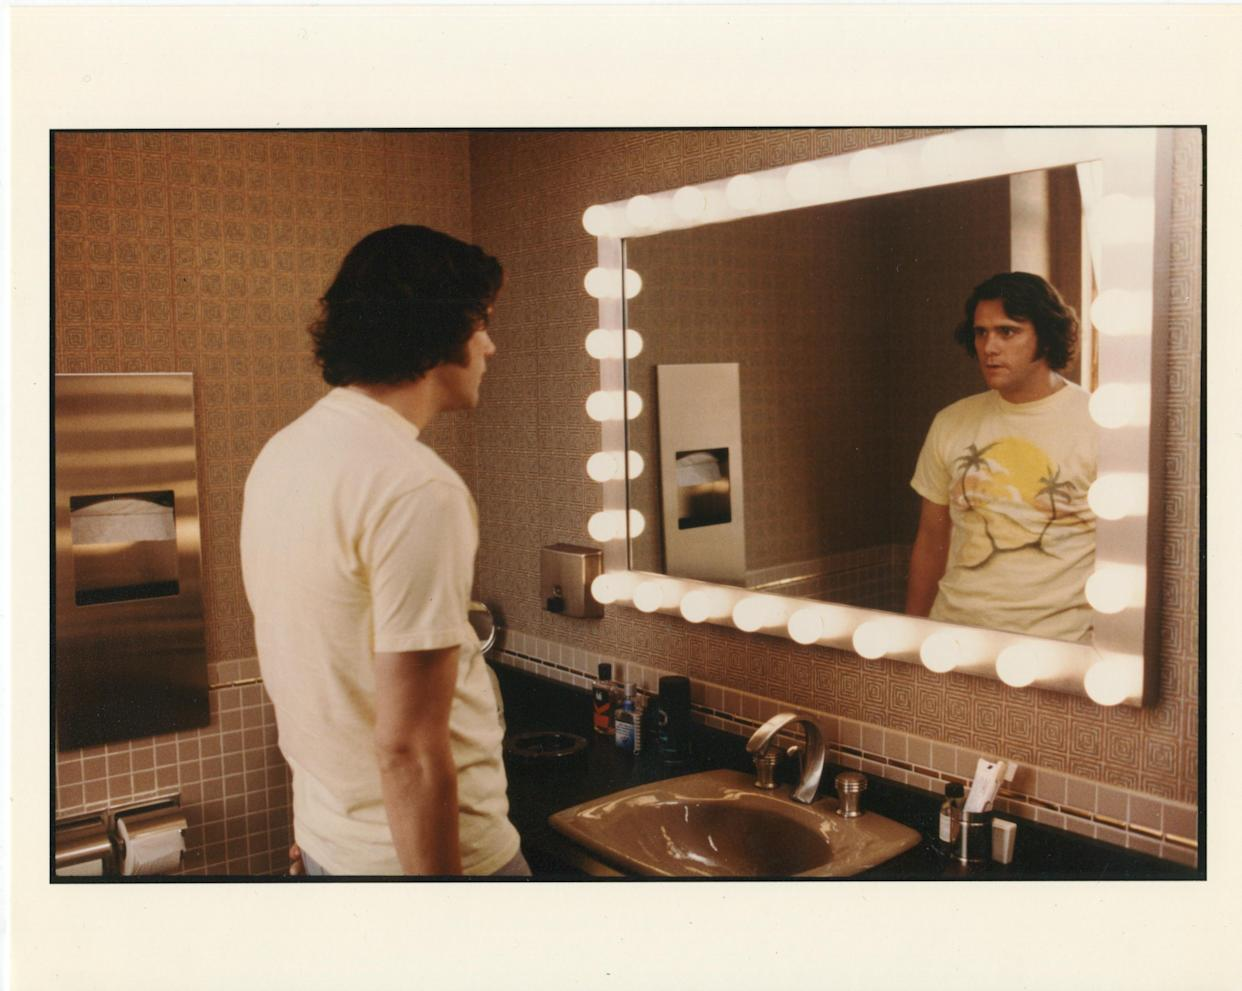 Jim Carrey as Andy Kaufman in a still from Netflix's Jim & Andy: The Great Beyond (Netflix)